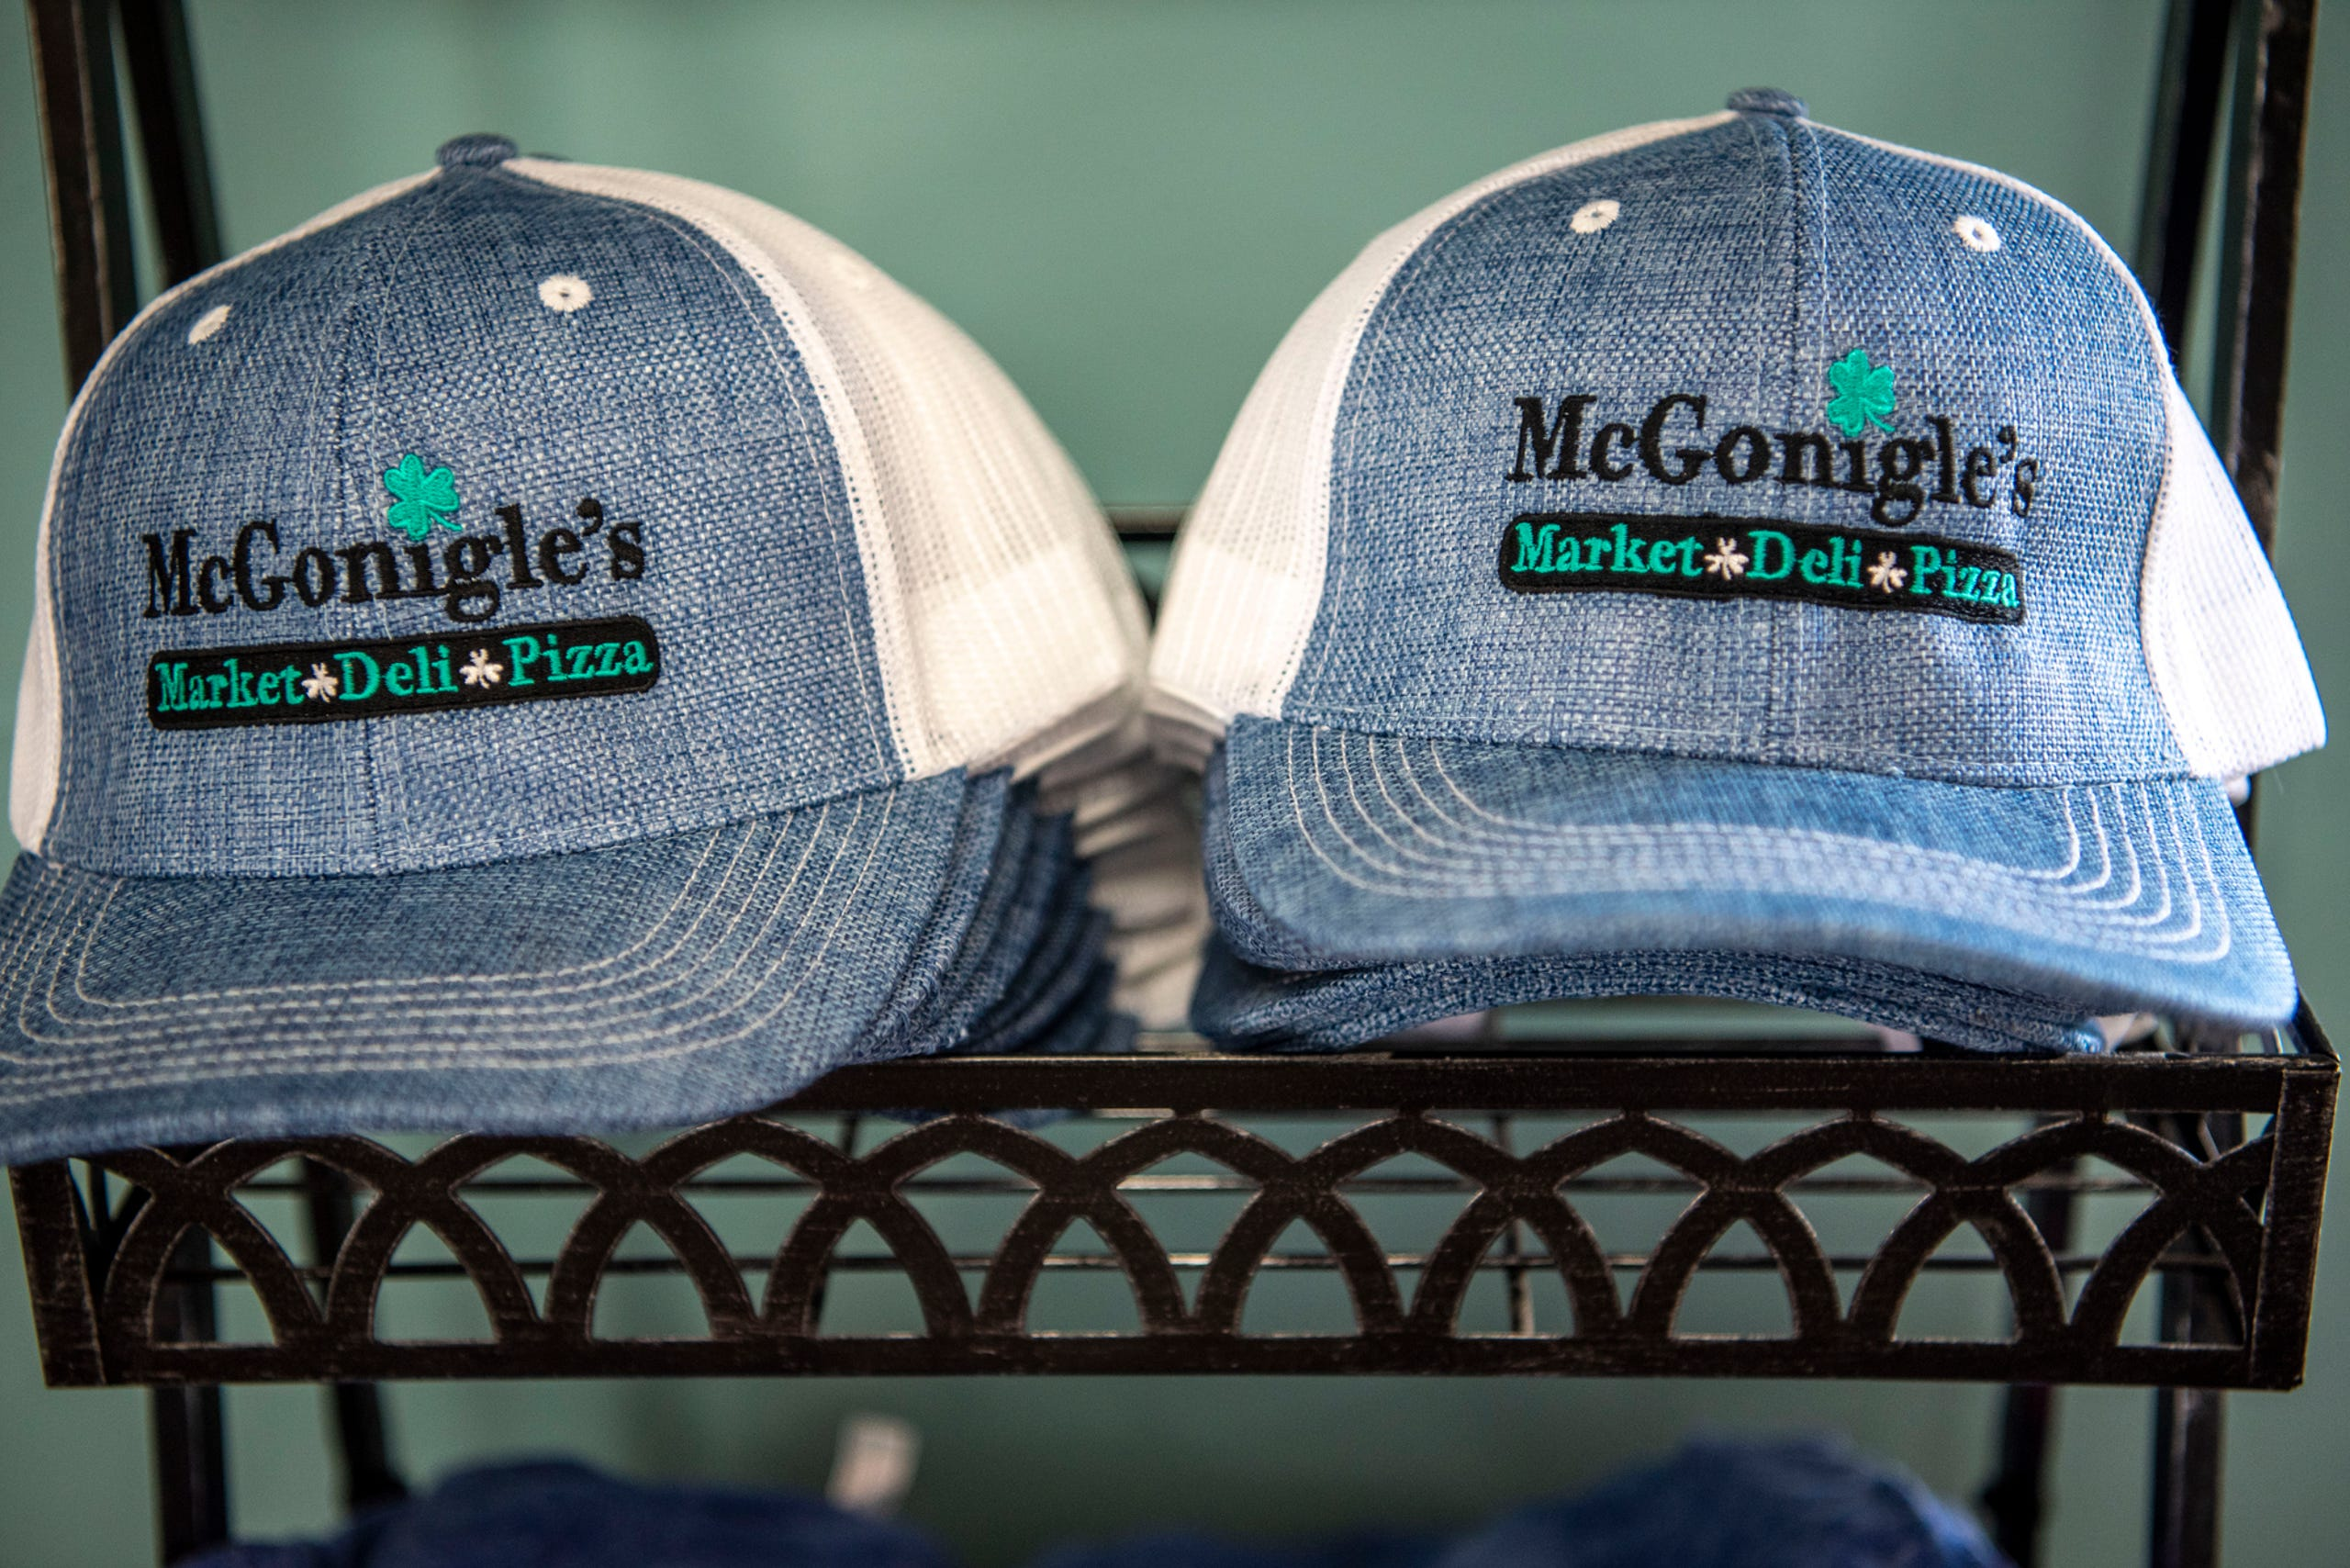 Mcgonigle S Market Deli And Pizza Opens At Pennfield Plaza